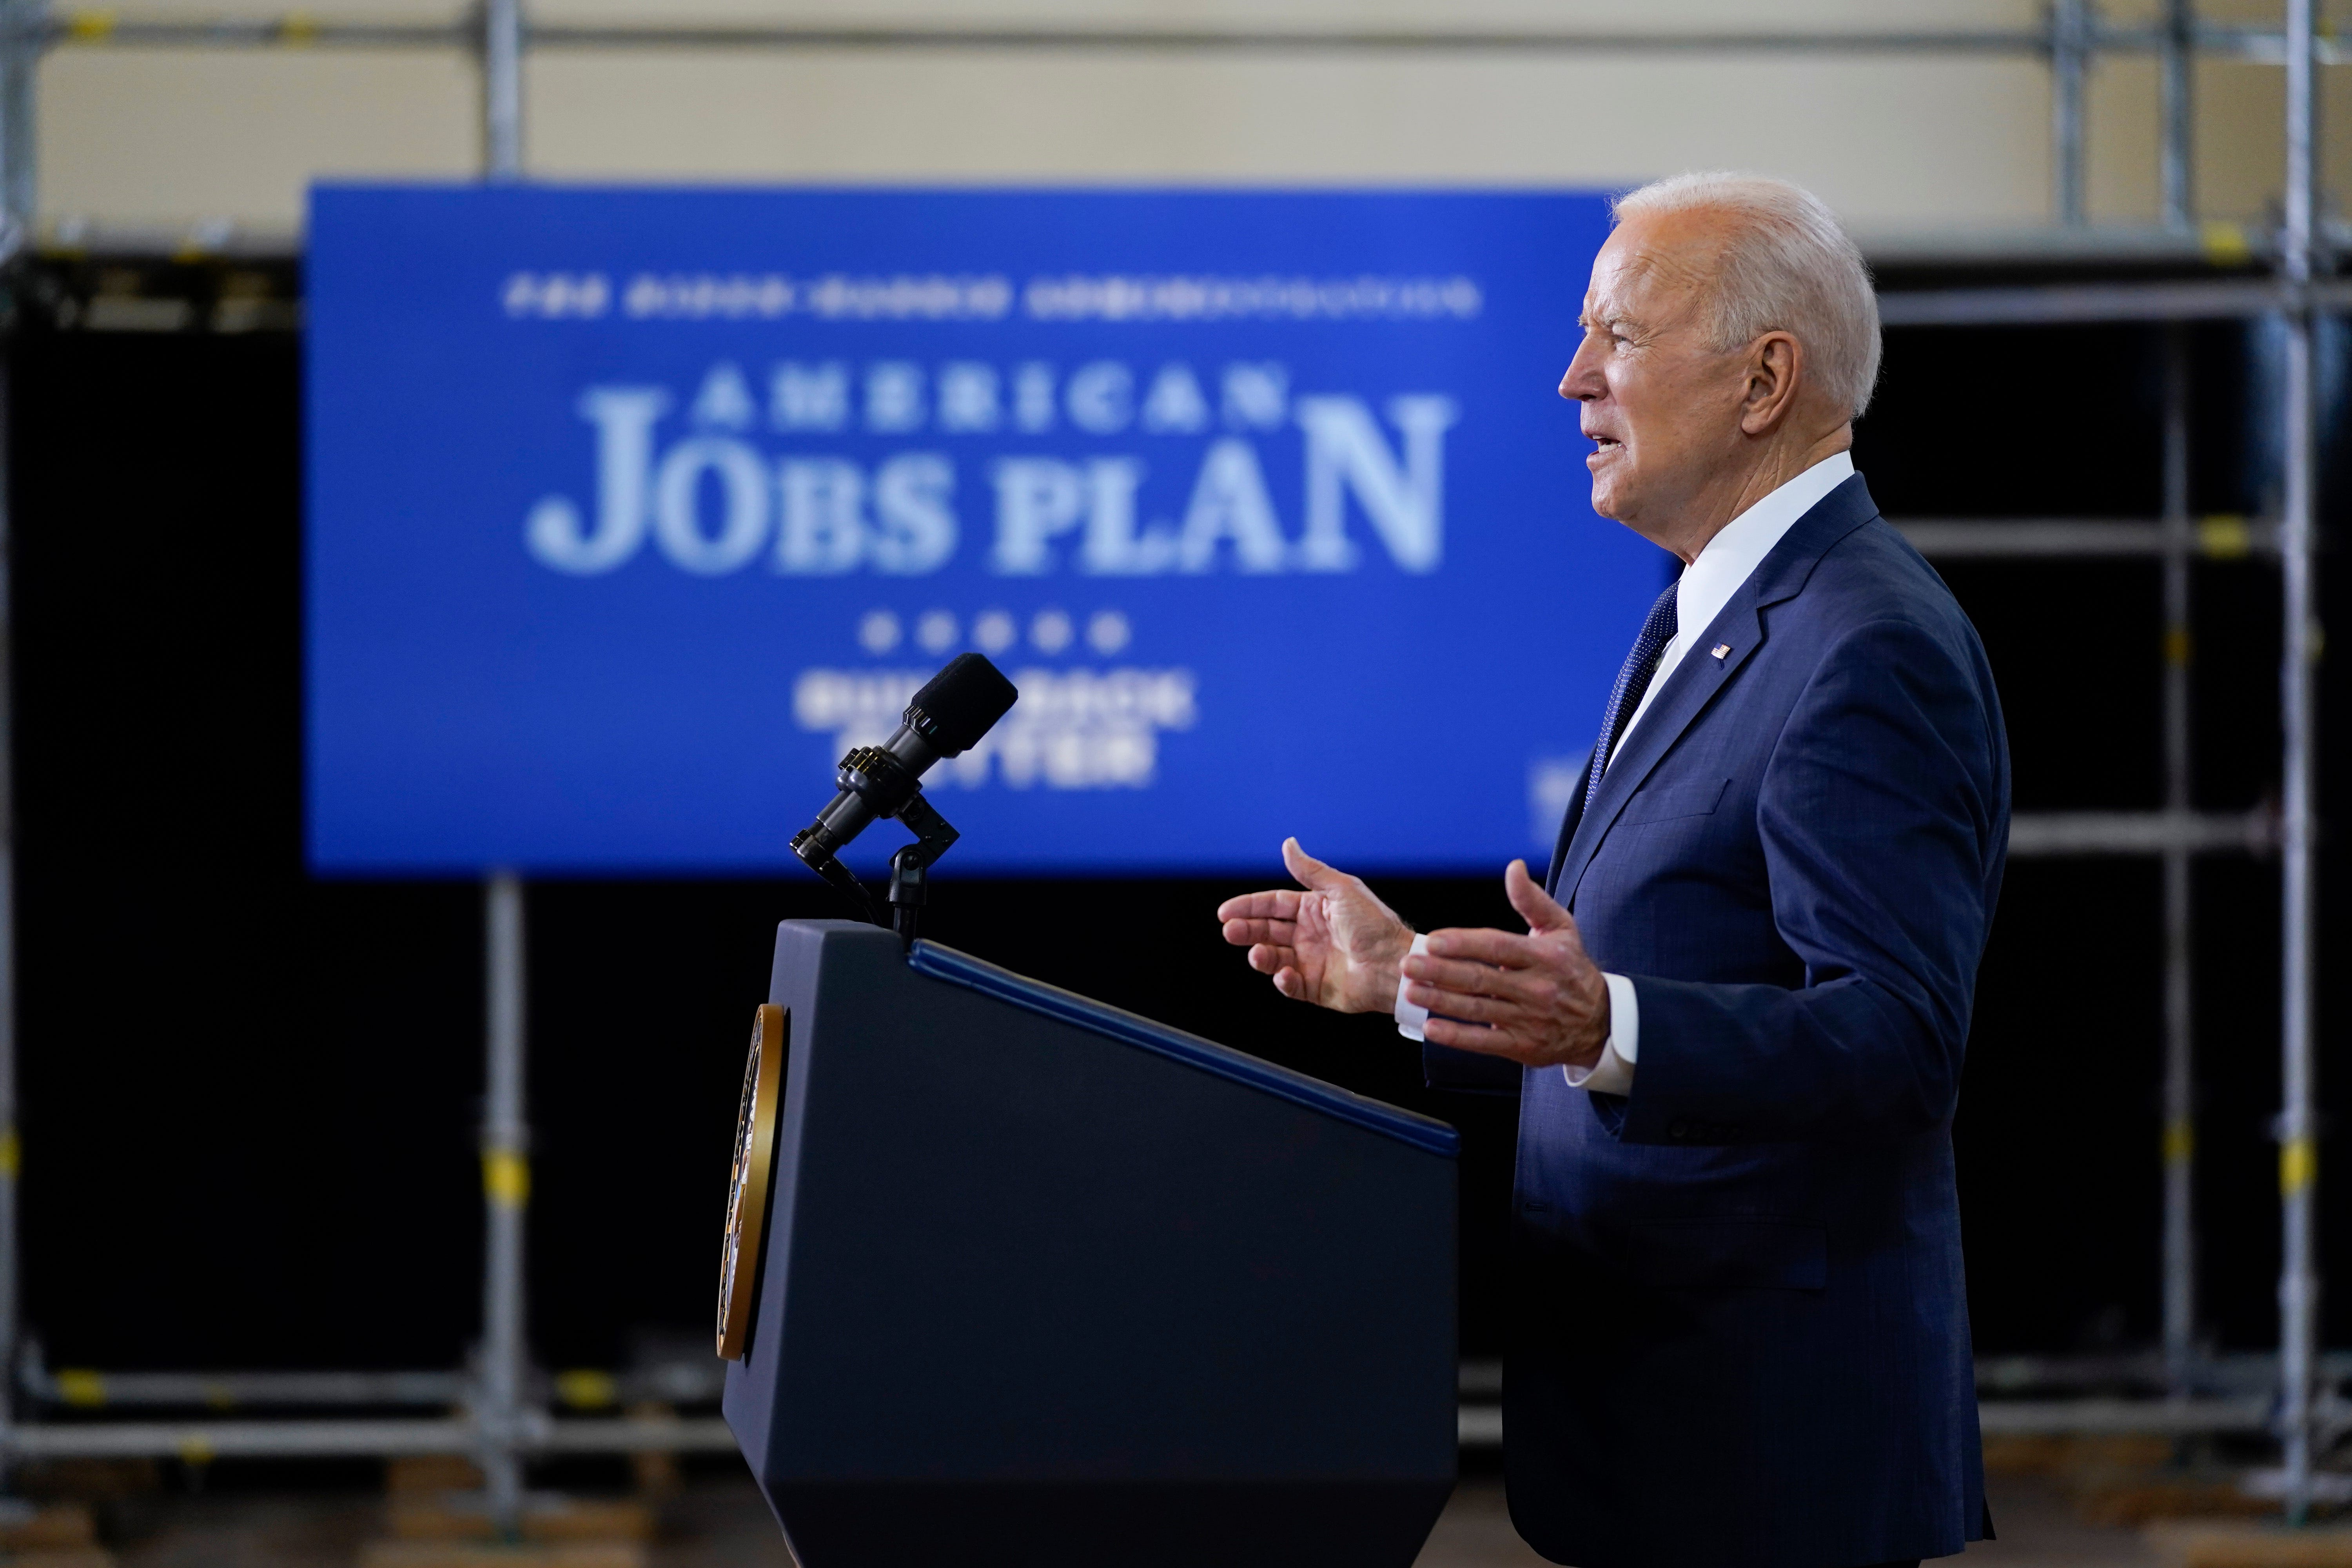 We can t delay : Biden proposes $2 trillion infrastructure, jobs plan funded by corporate tax hike